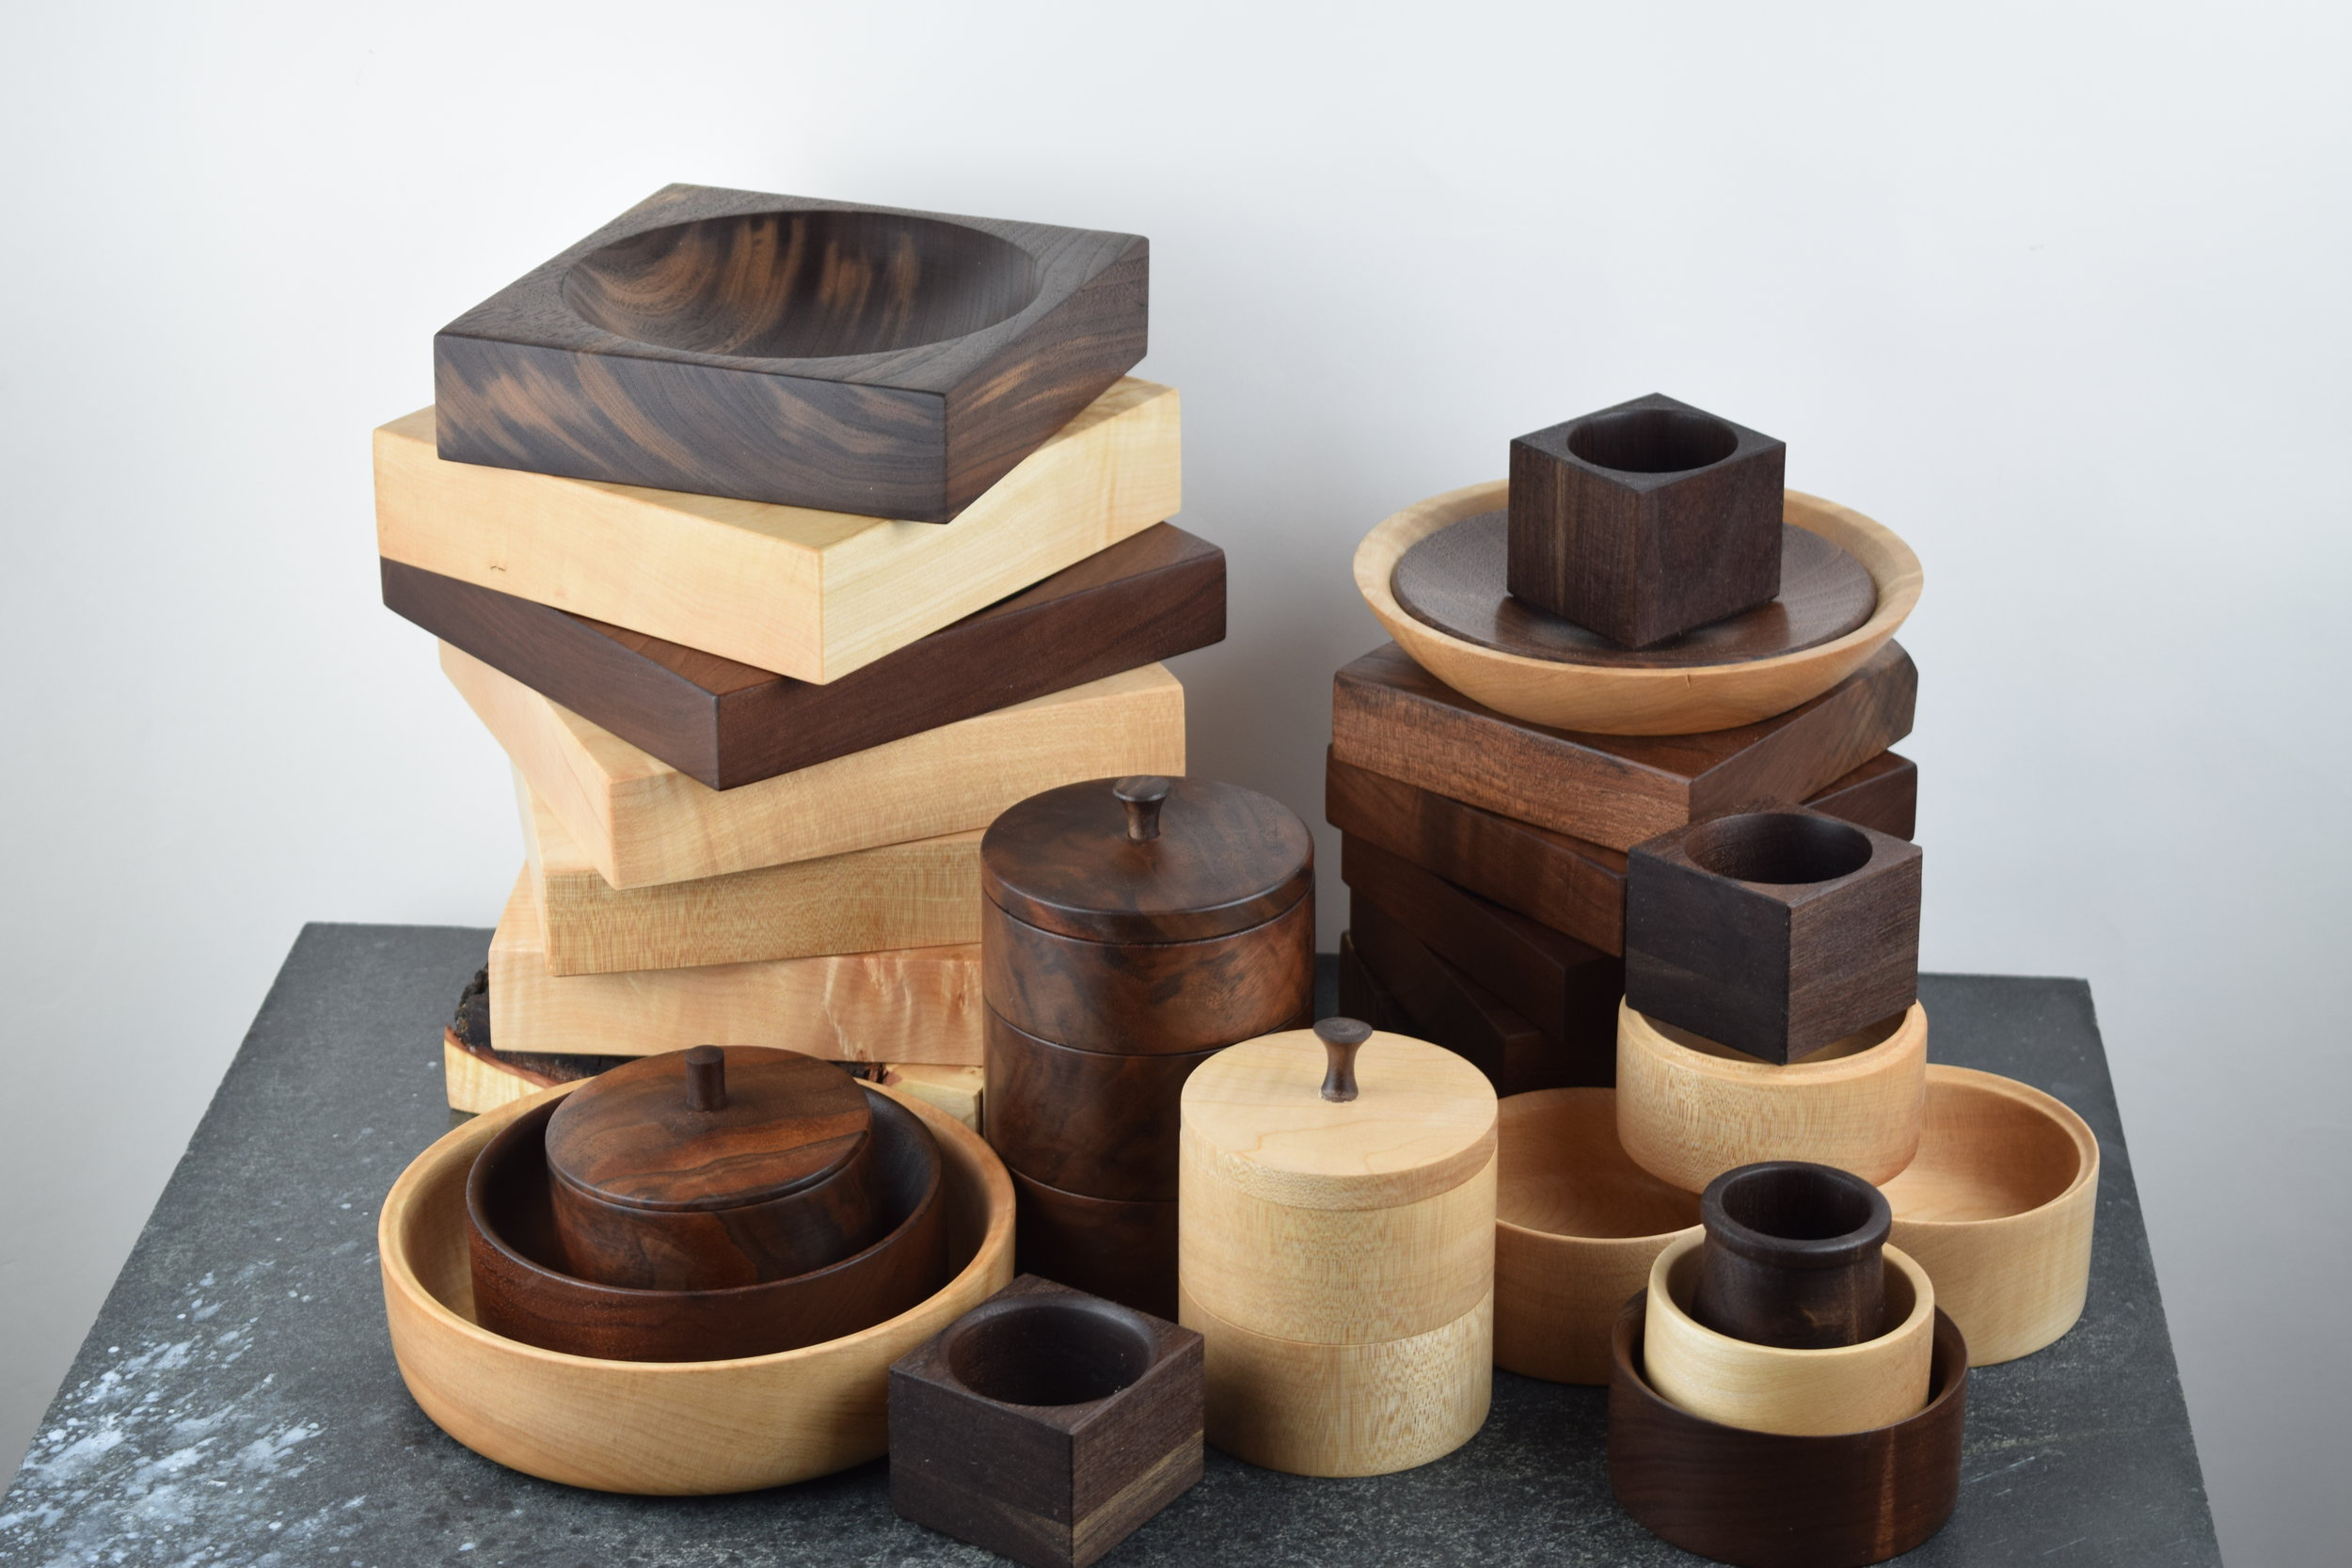 Turned Bowls,Salt Cellars and Accessories - Native Pacific Northwest Hardwoods